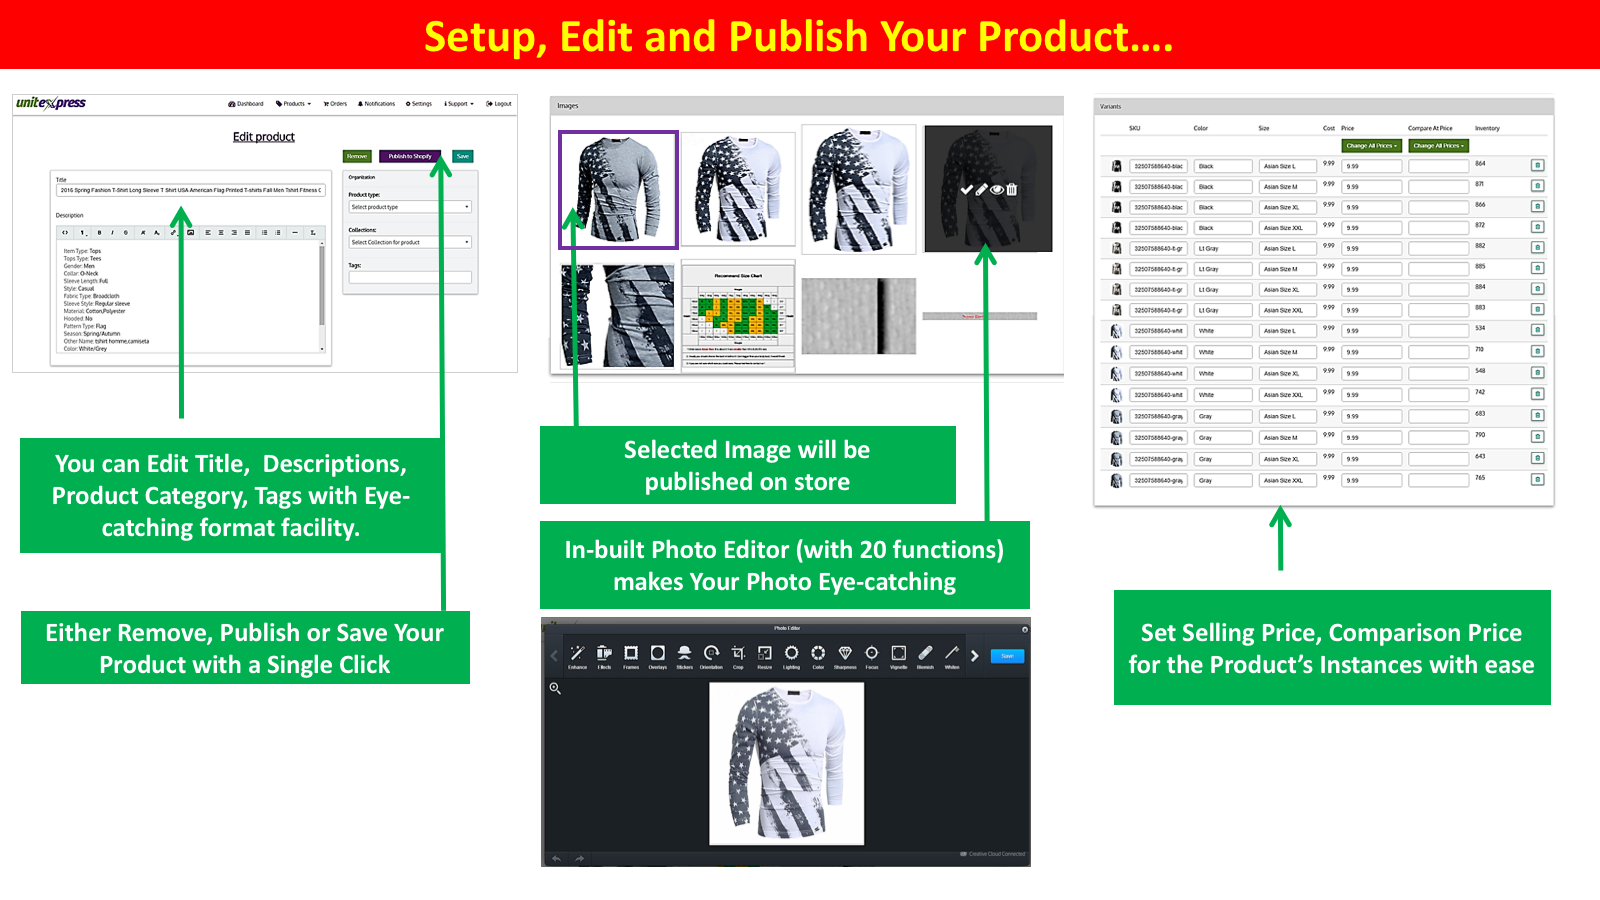 Setup & Edit Your Products before Publish